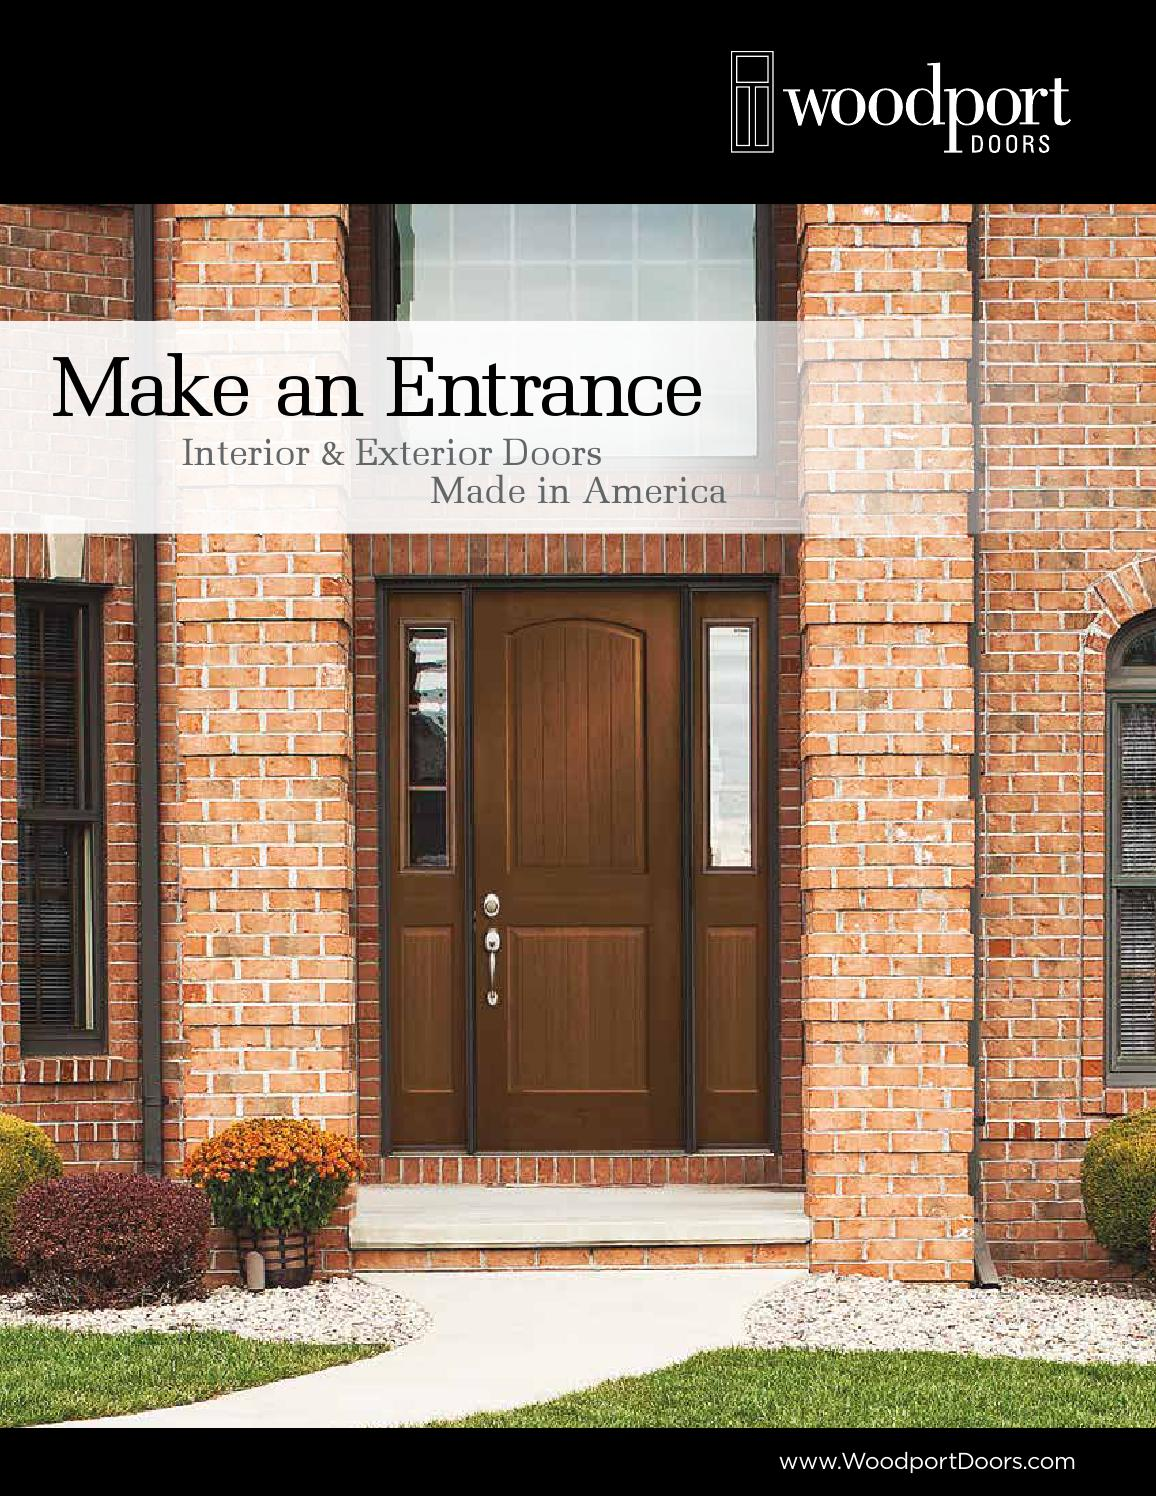 Woodport Doors Interior And Exterior Door Catalog